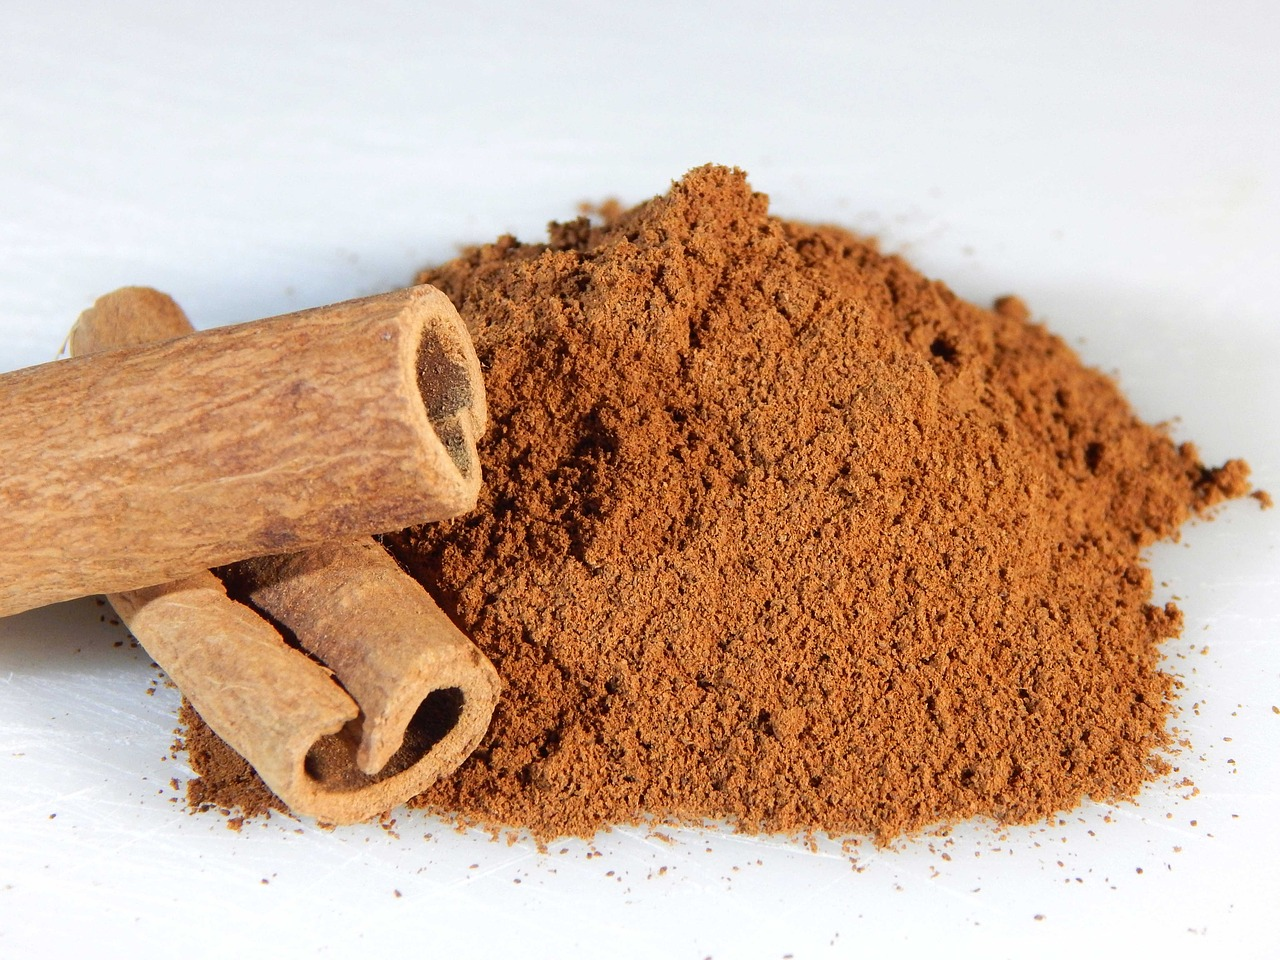 Add a small spoonful of cinnamon and two garlic cloves to 250ml water. (Image: pixabay / CC0 1.0)